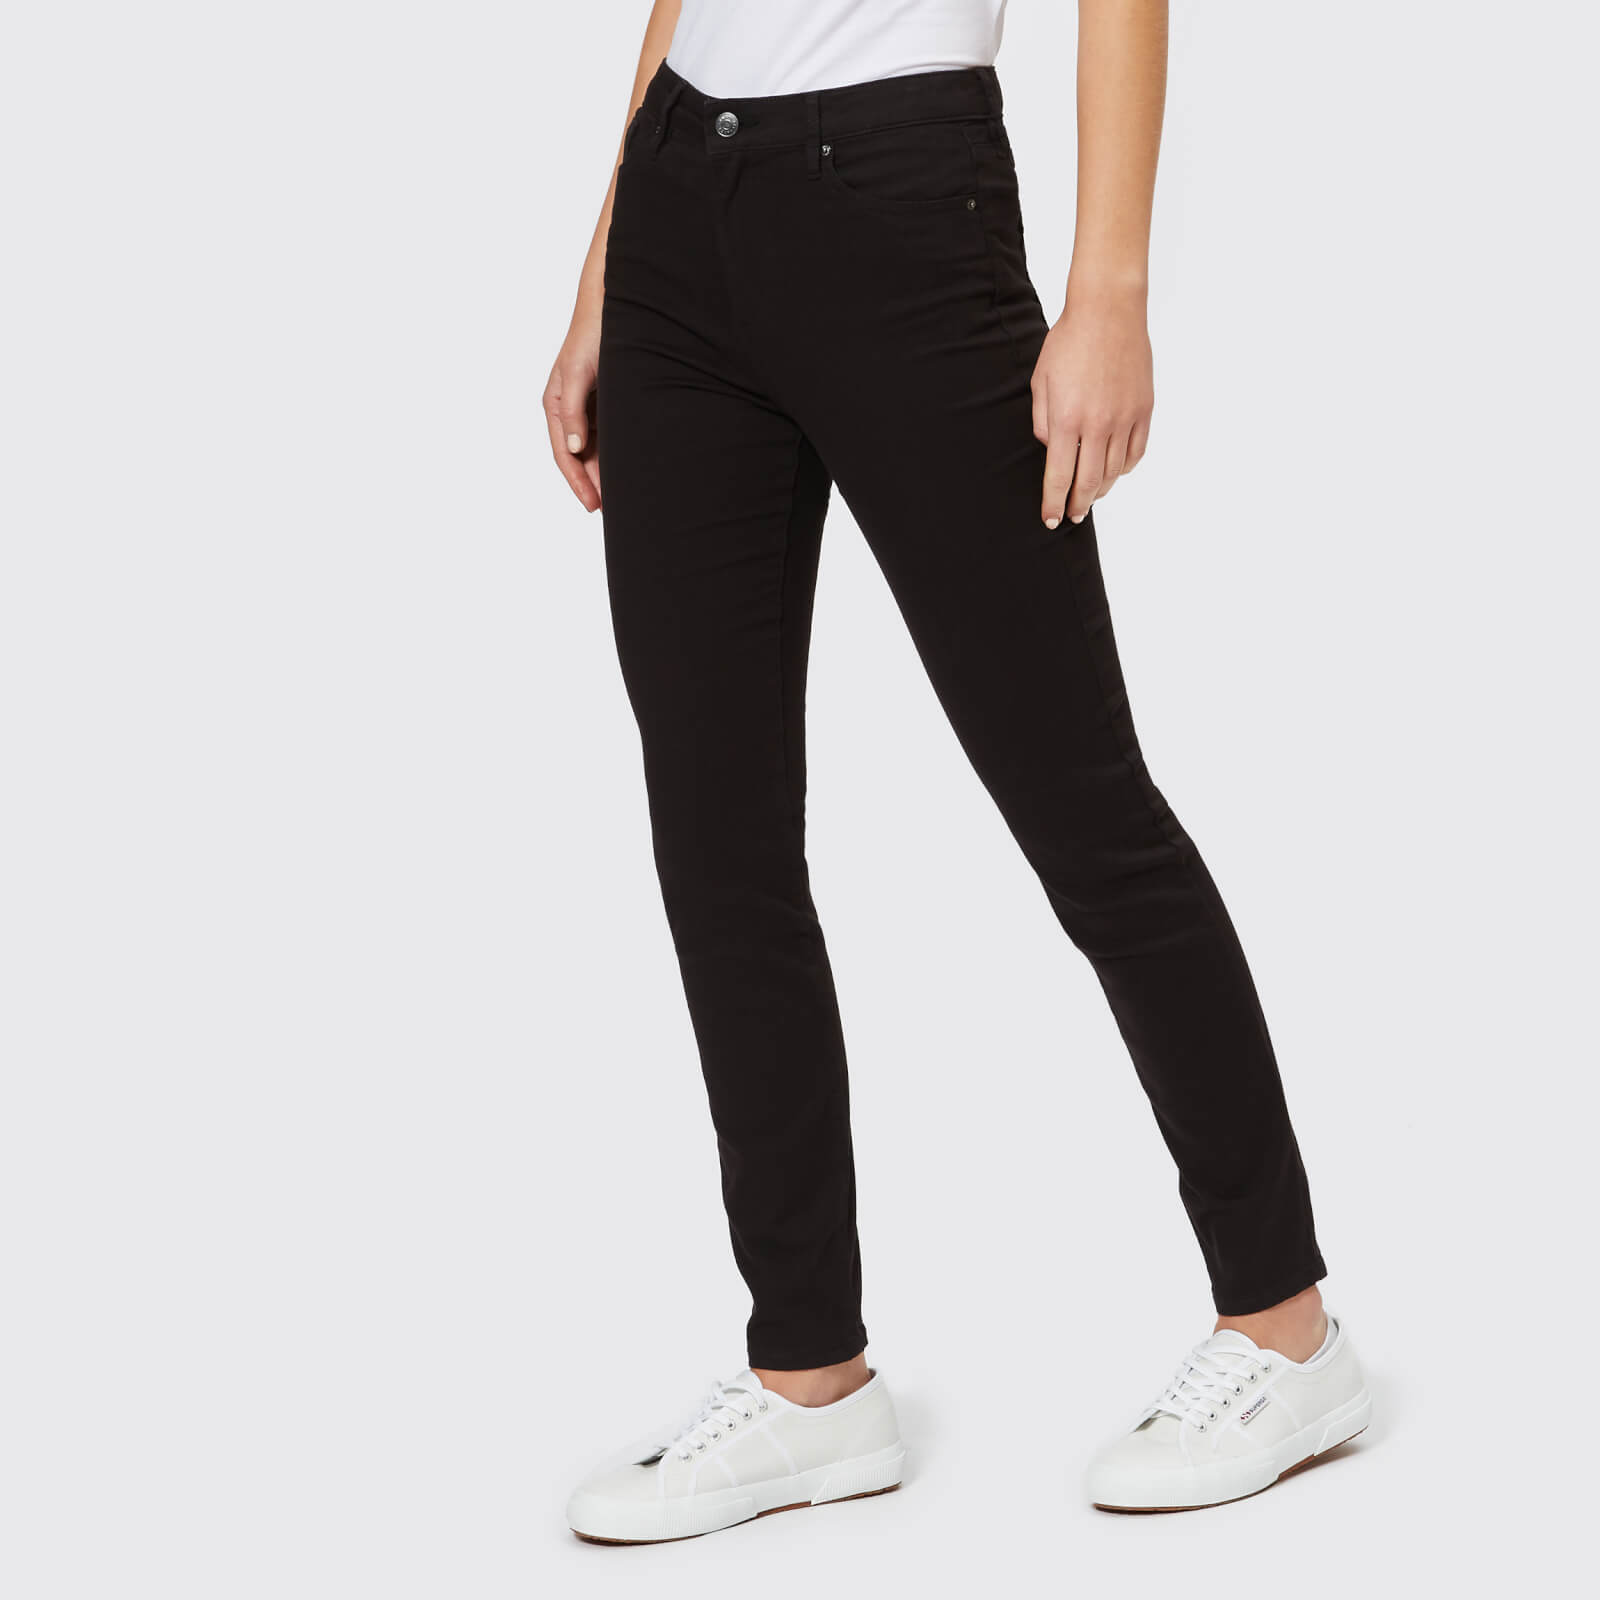 aa5bb512ed957 Armani Exchange Women's 5 Pocket Super Skinny High Rise Jeans - Black Denim  Clothing | TheHut.com